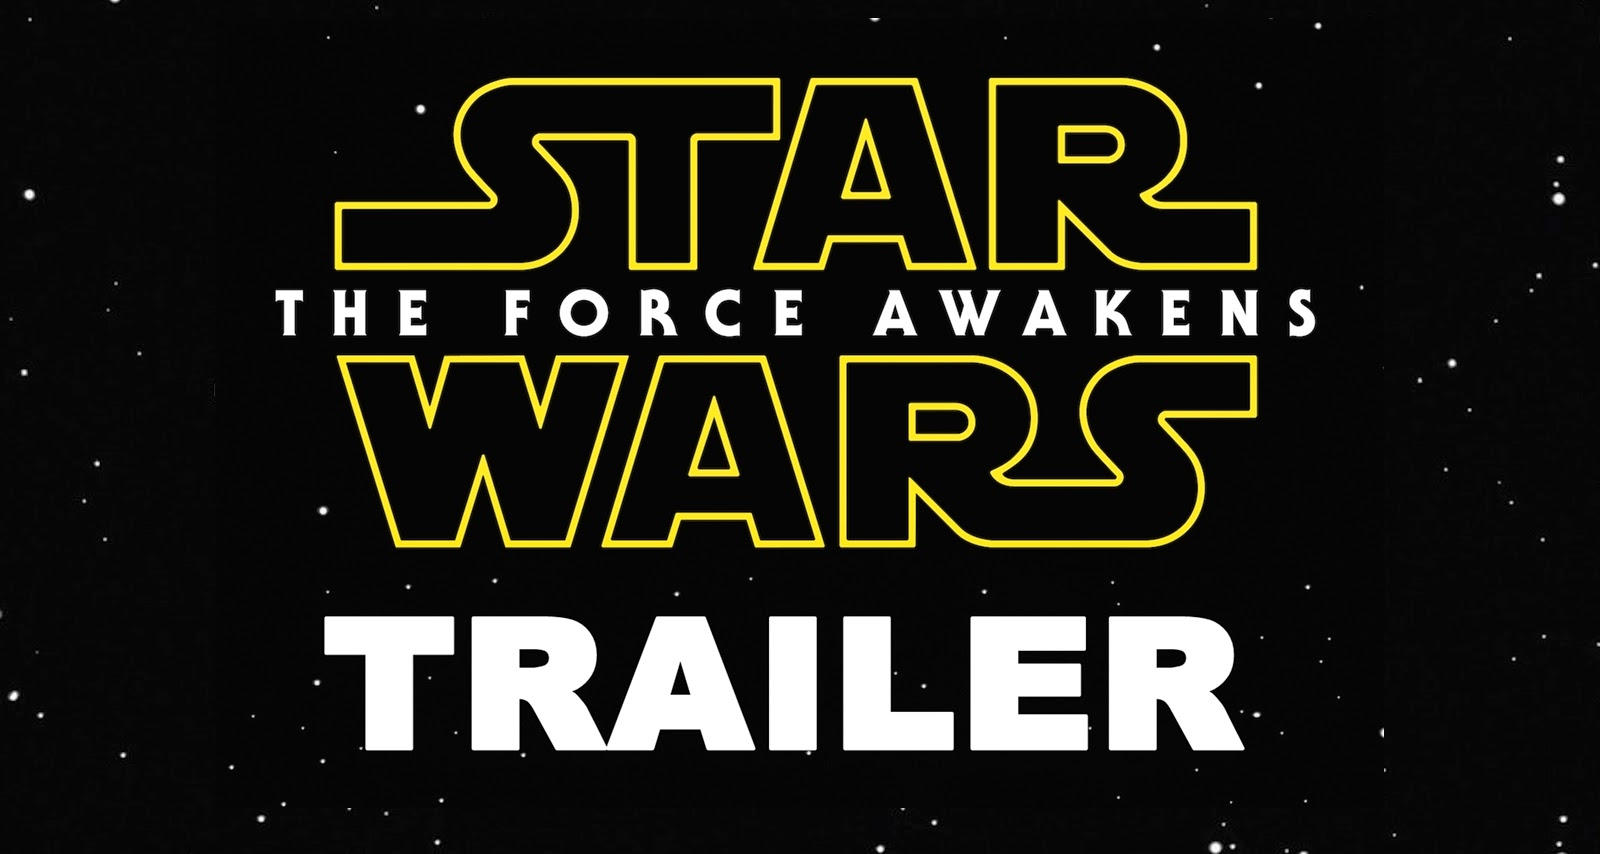 Breaking the force awakens trailer is here